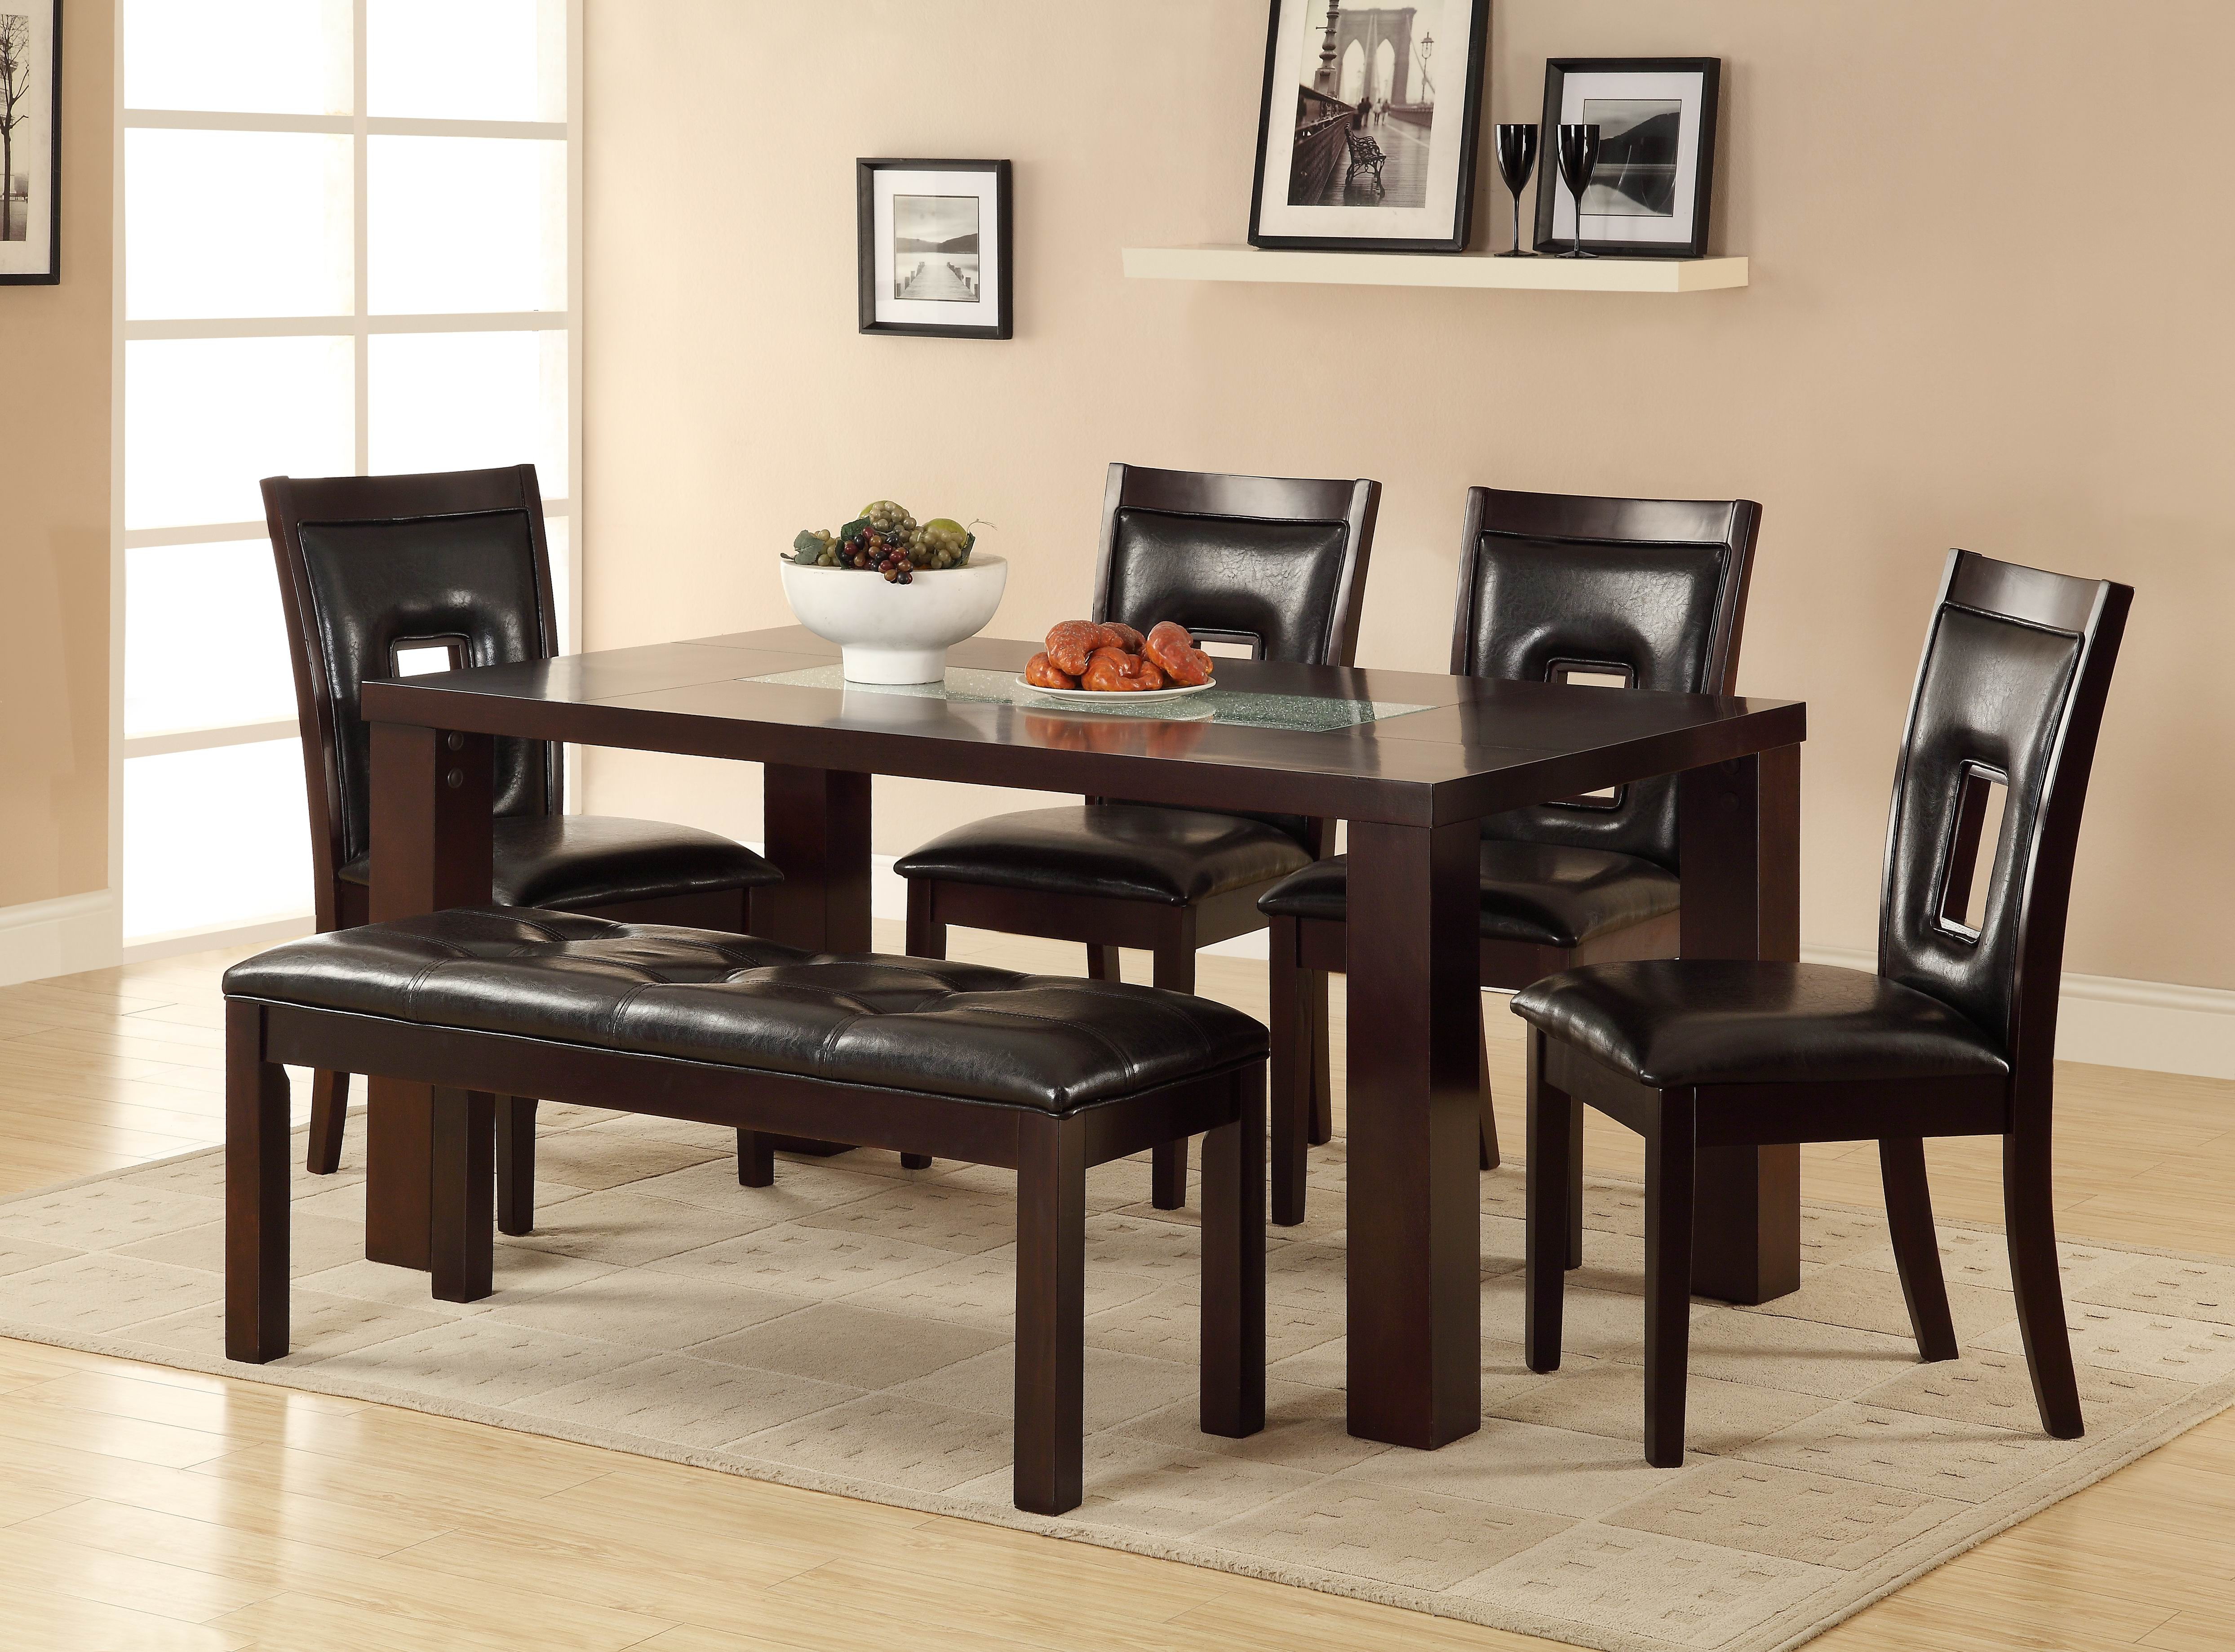 dining tables archives - nations rent-to-own | nations rent-to-own